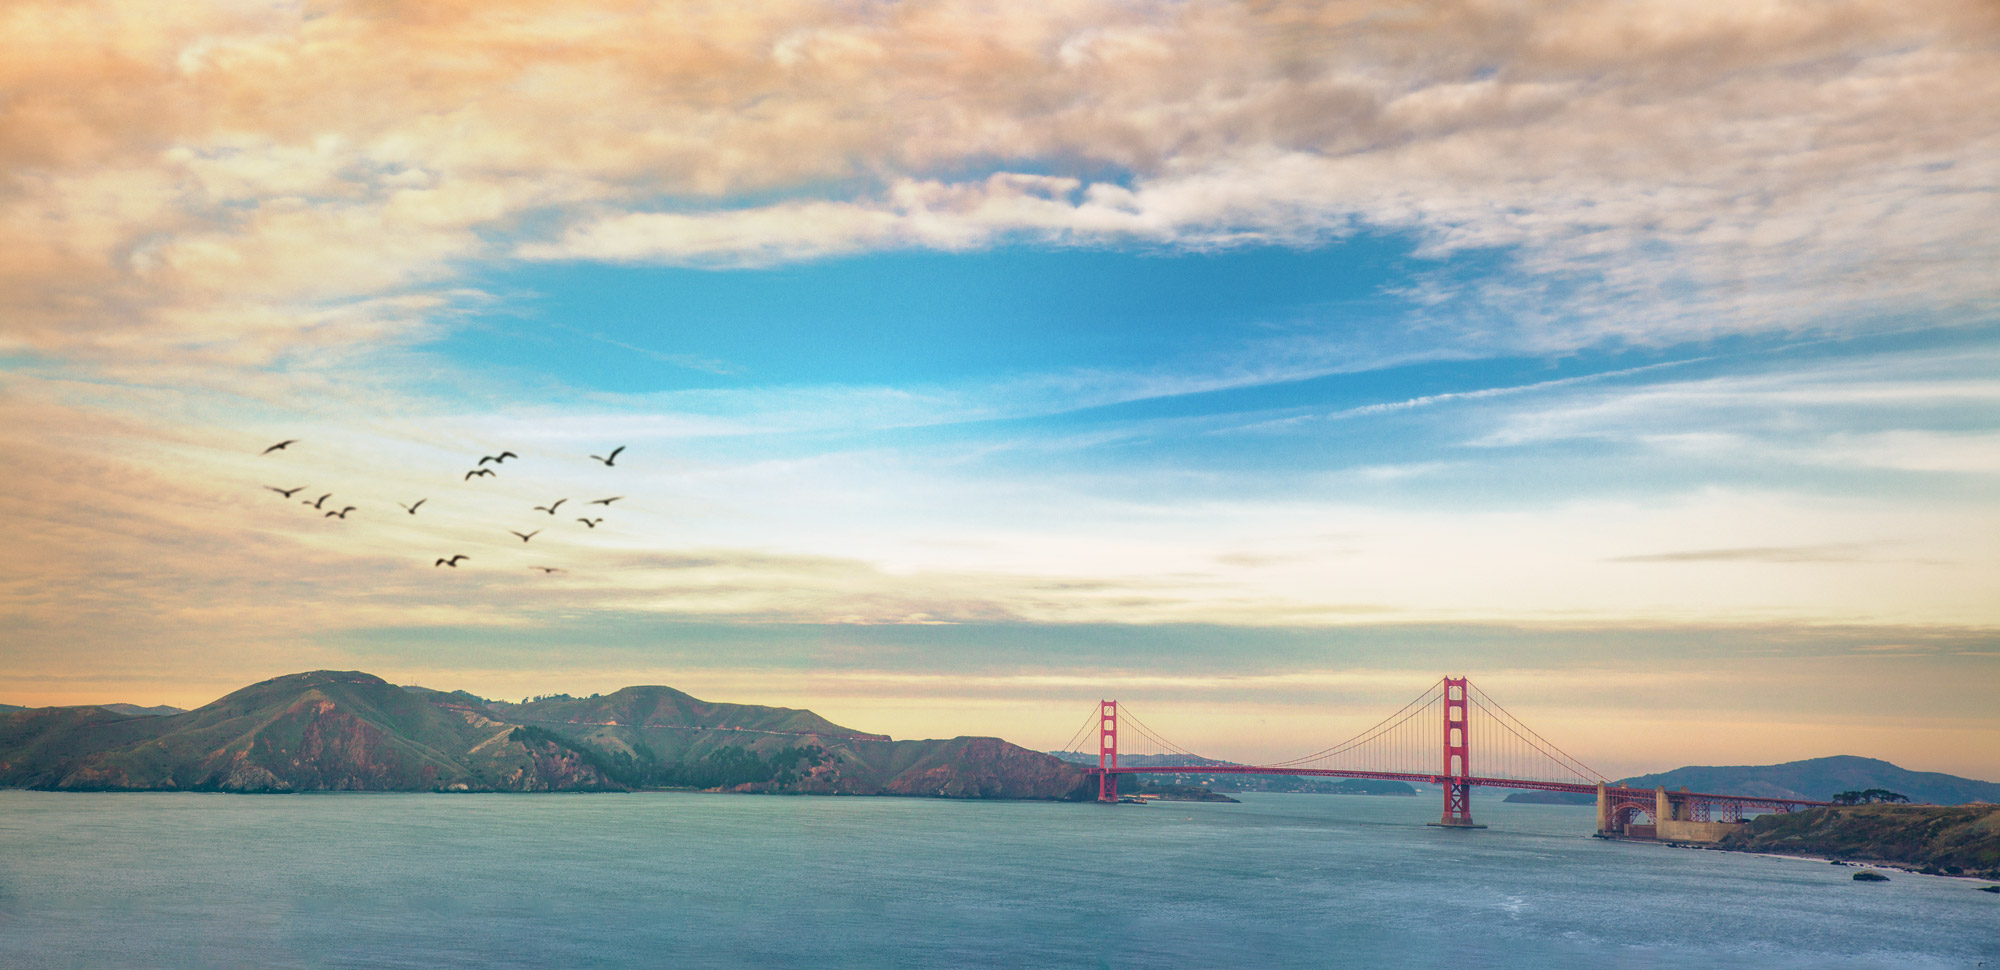 The Golden Gate Bridge, as seen from Land's End, in San Francisco